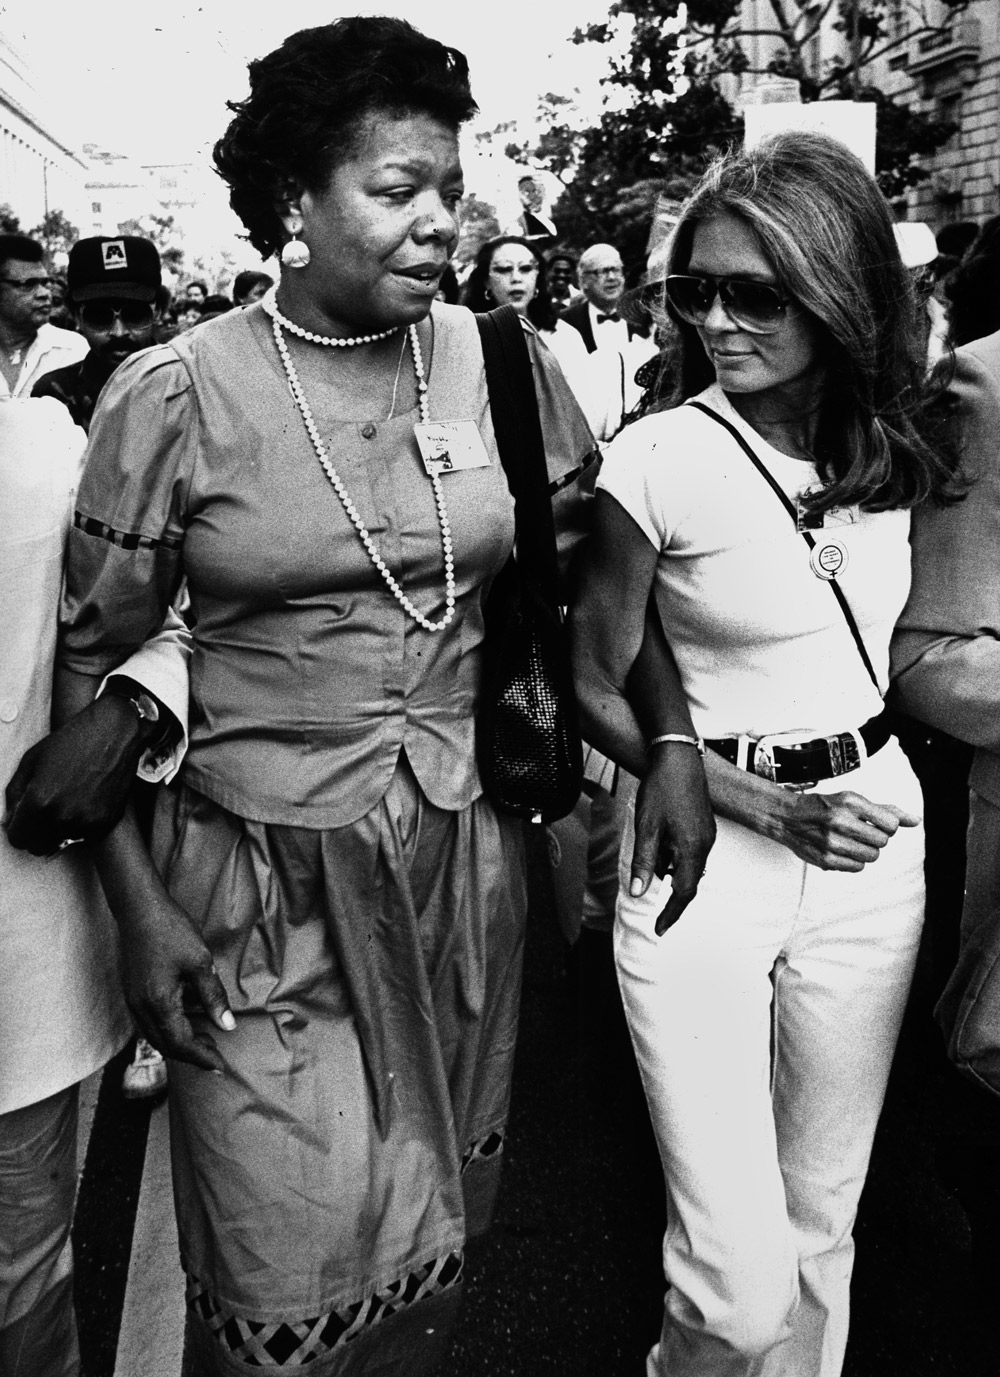 Angelou and Gloria Steinem commemorate the twentieth anniversary of the March on Washington, on August 27, 1983. Photograph by James M. Thresher:The Washington Post via Getty.